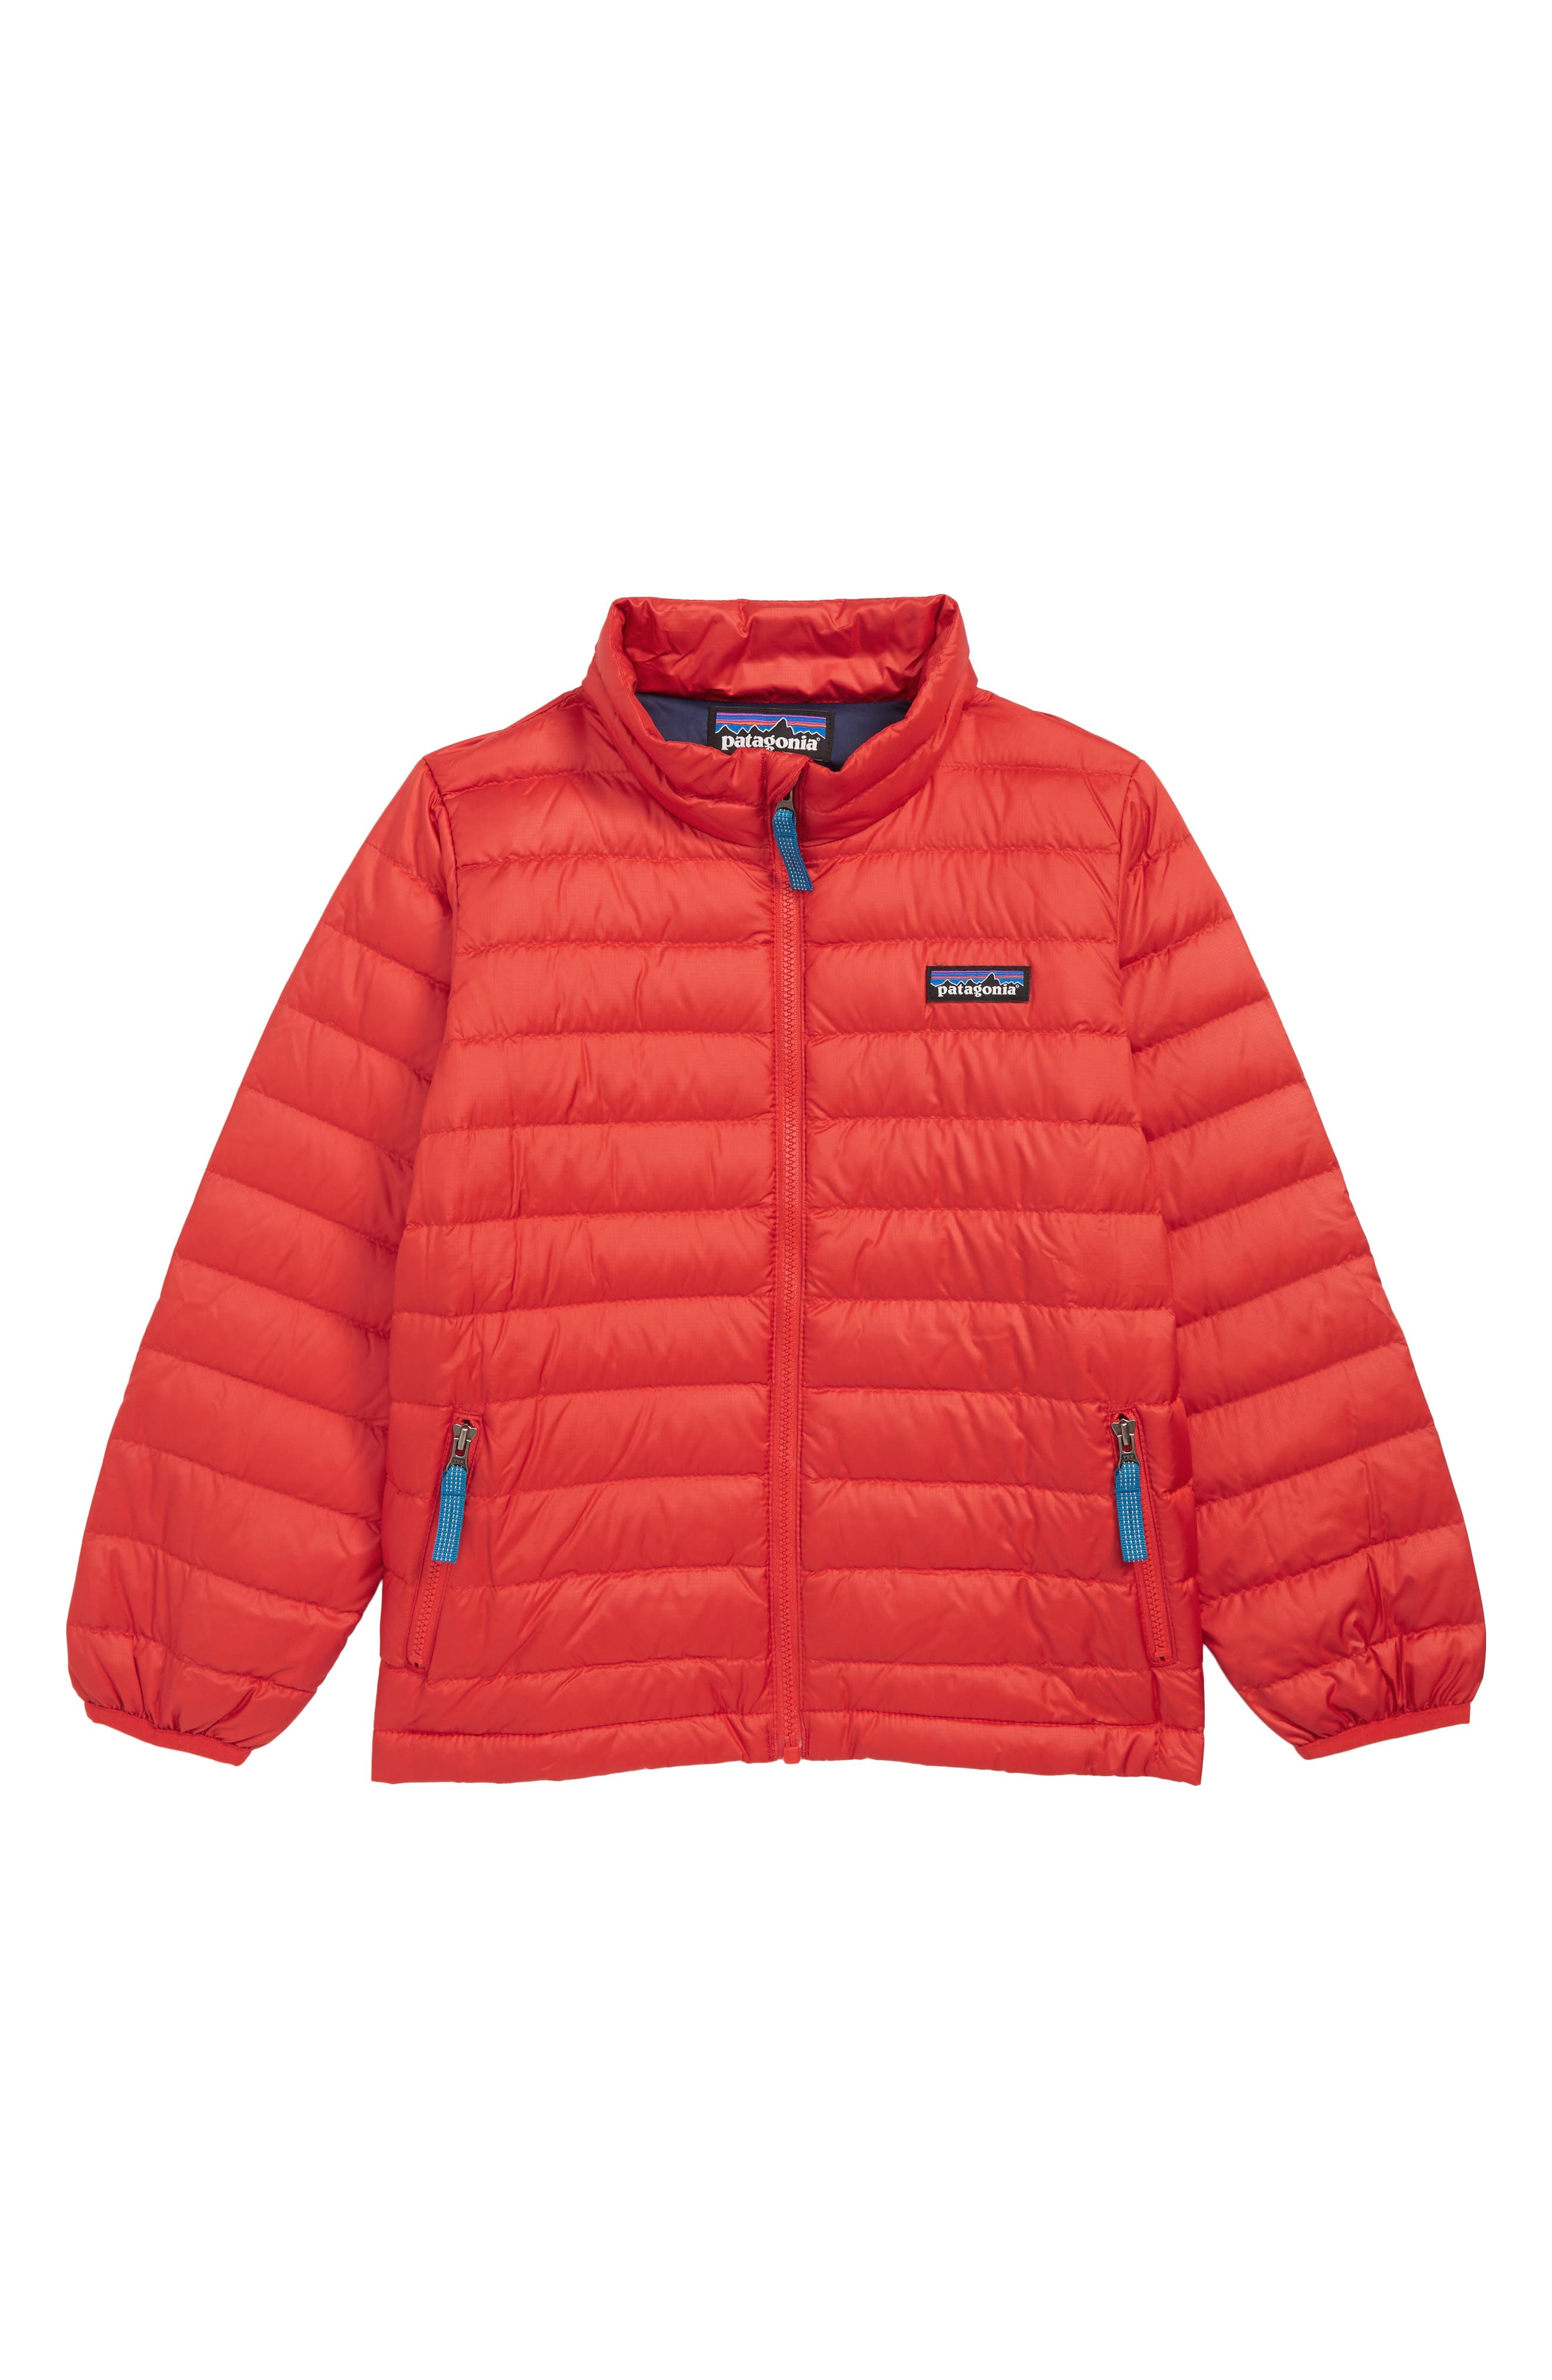 Toddler Boys Patagonia Water Repellent 600Fill Power Down Sweater Jacket Size 5T  Red